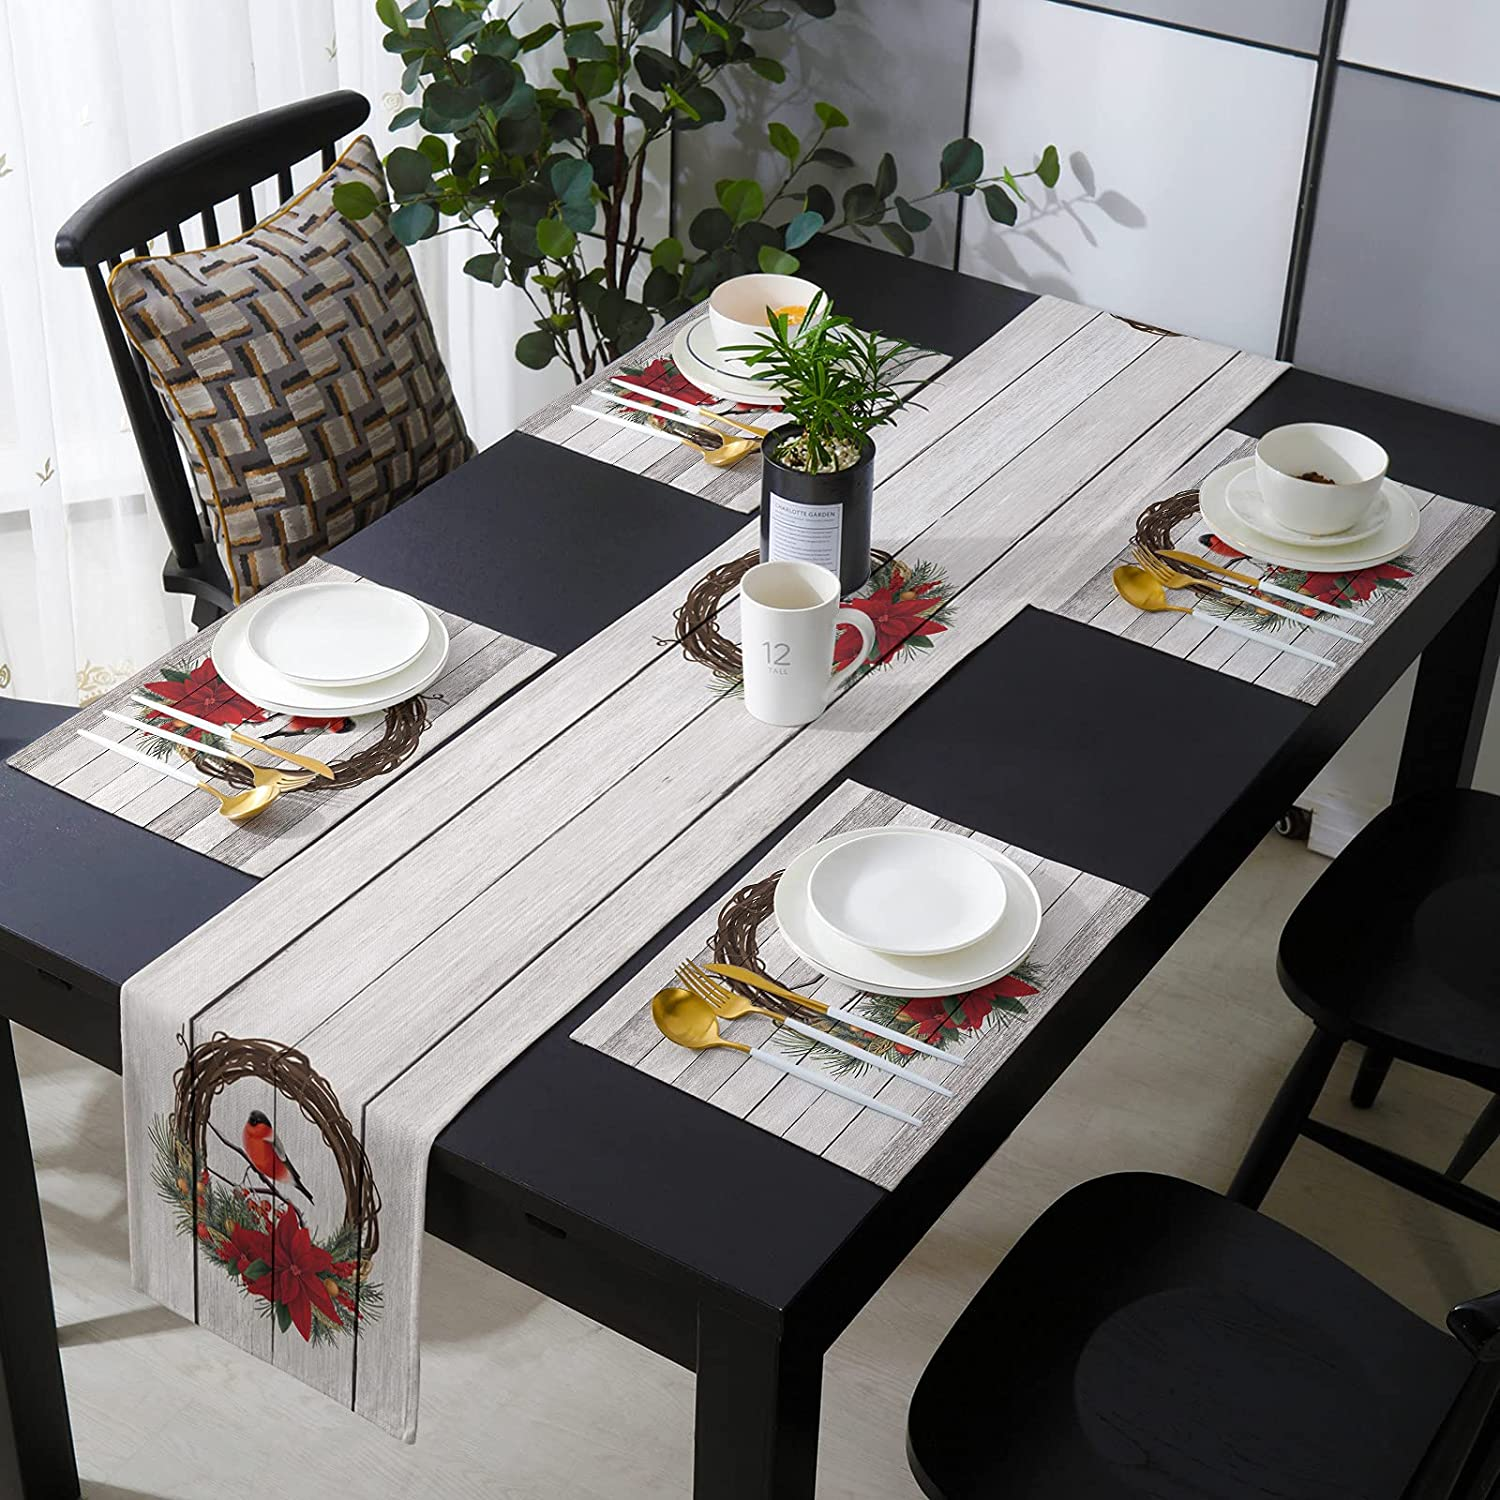 Los Angeles Mall 4 Placemats with Matching Table Runner Long Inches Ranking TOP10 Merry C 13x90